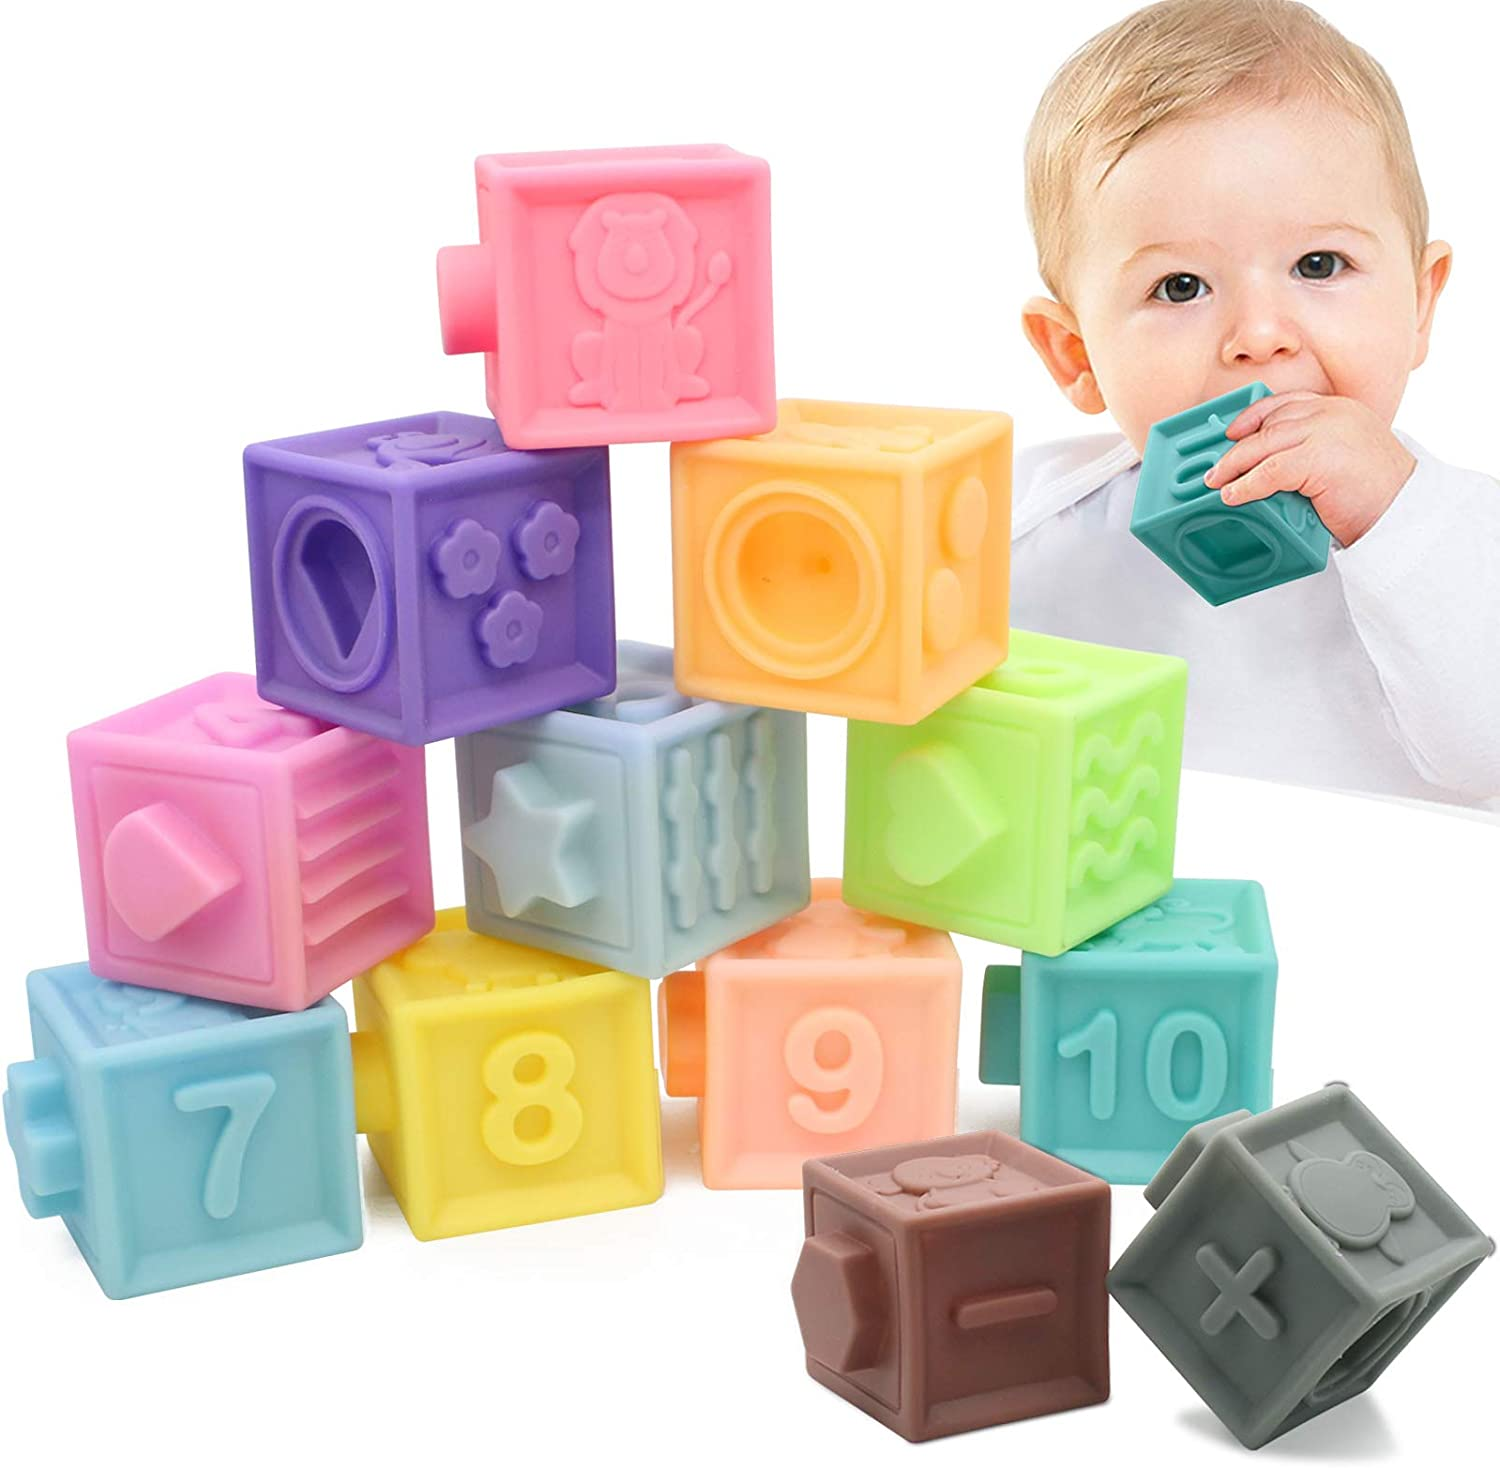 Educational Baby Toys 6 Months and up Starter Kit with Numbers Shapes BPA Free 12 Soft /& Colorful Stacking Blocks Animals /& Textures Mojoe Building Blocks for Toddlers